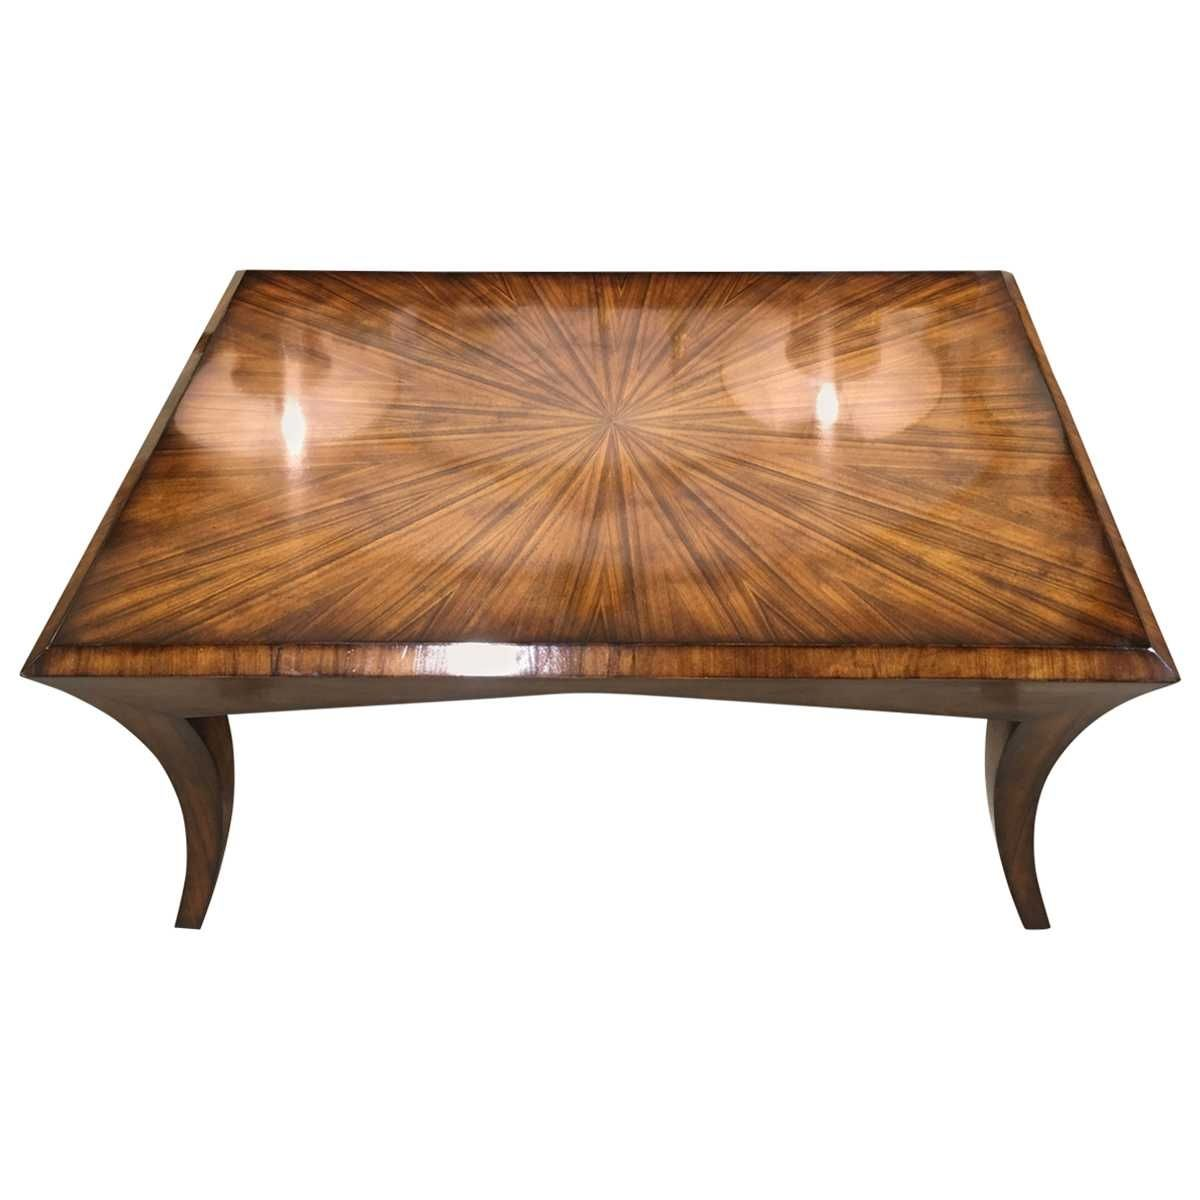 Starburst Coffee Table In 2020 Coffee Table